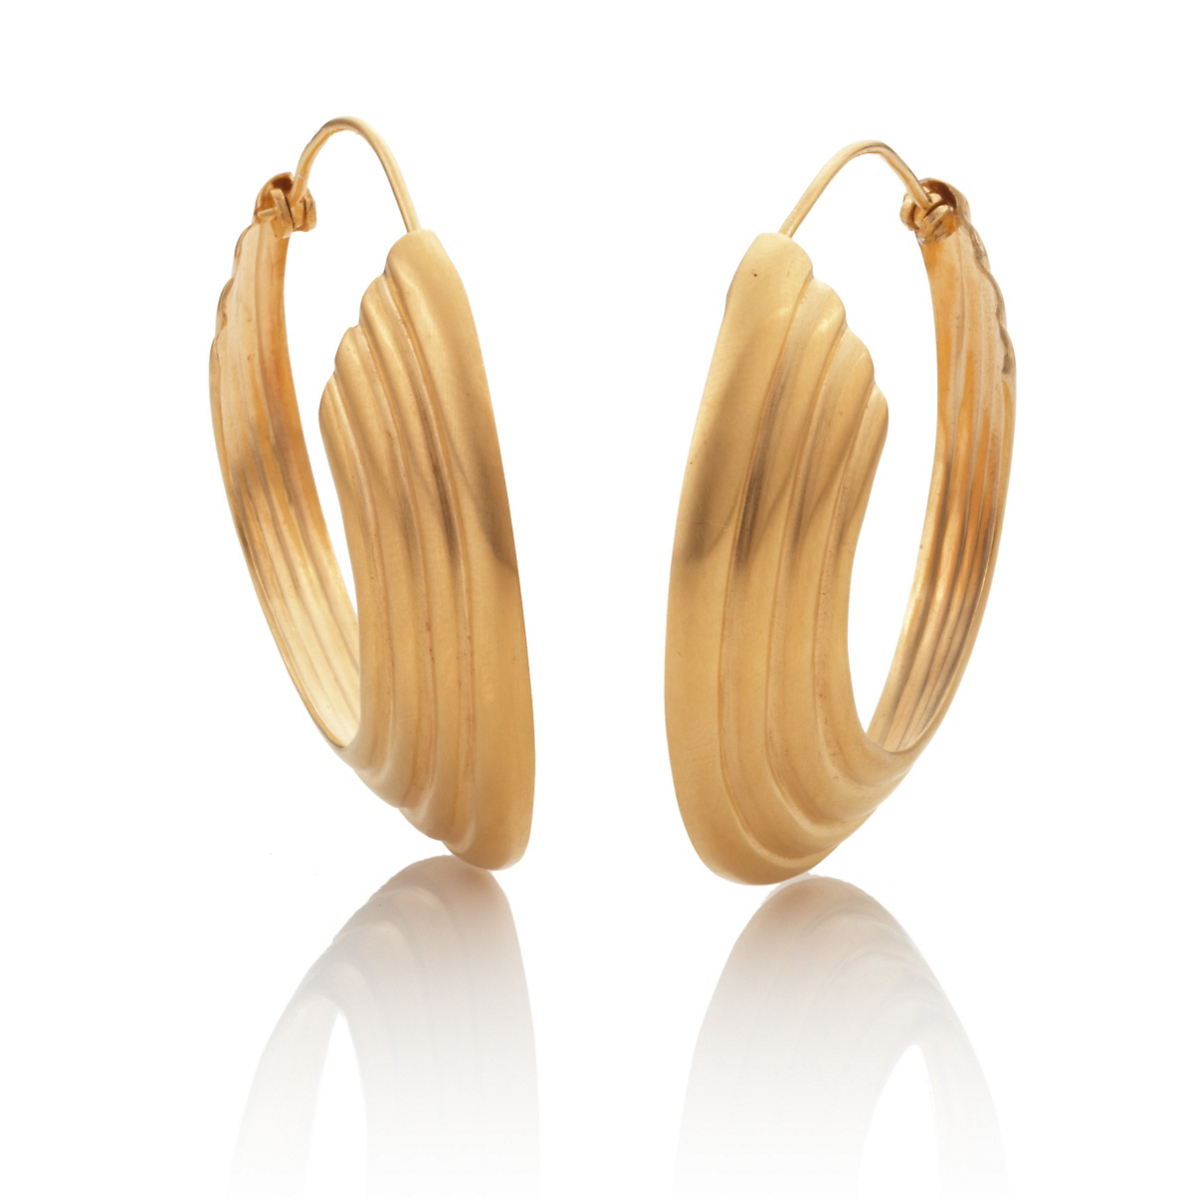 Anticoa Grooved Gold Vermeil Hoop Earrings